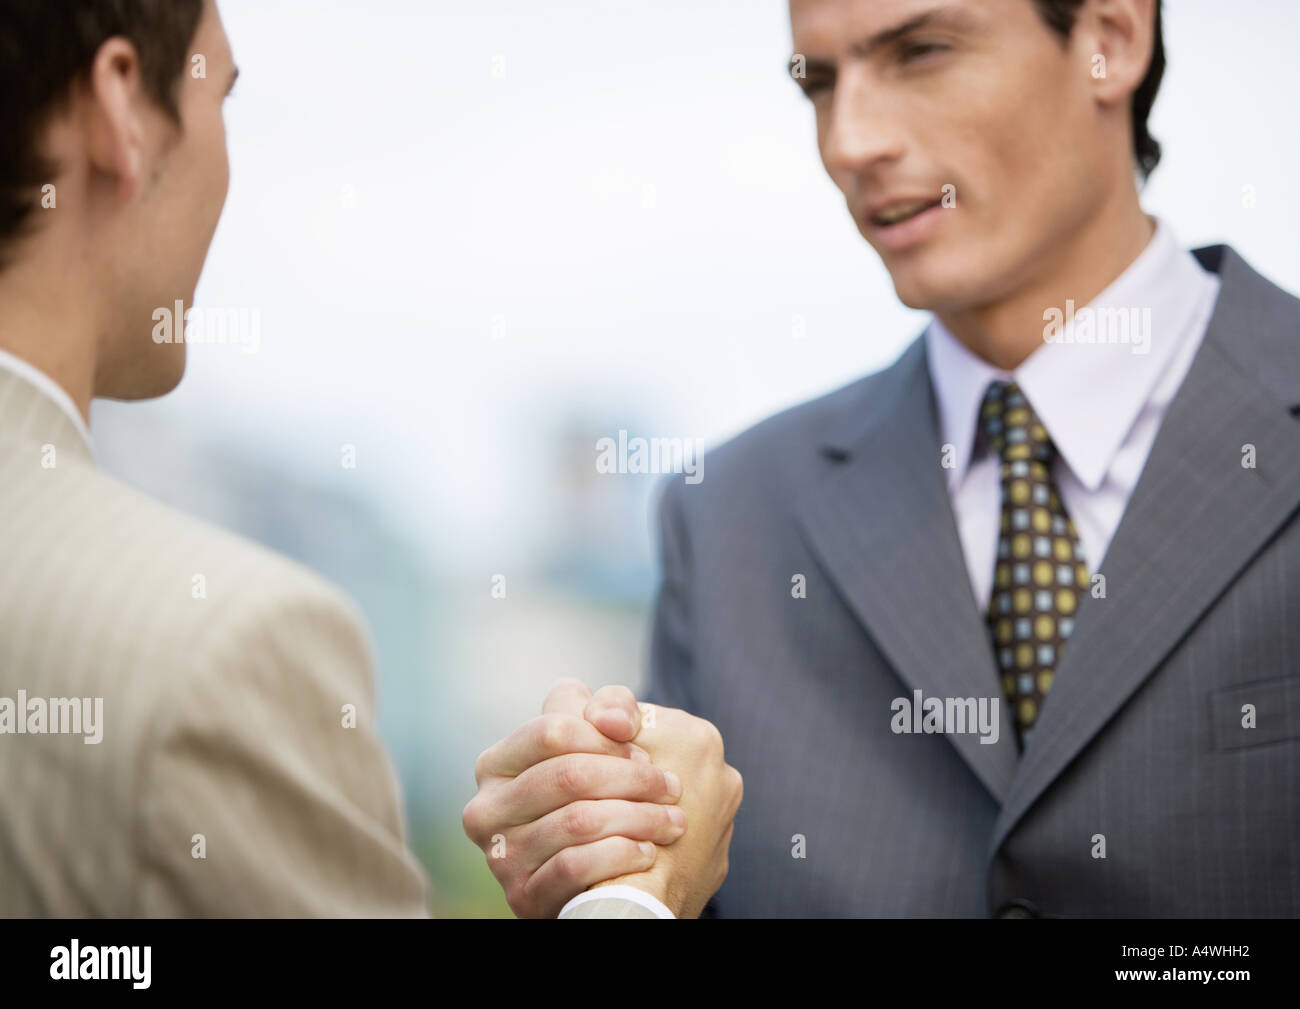 Two businessmen gripping hands Stock Photo